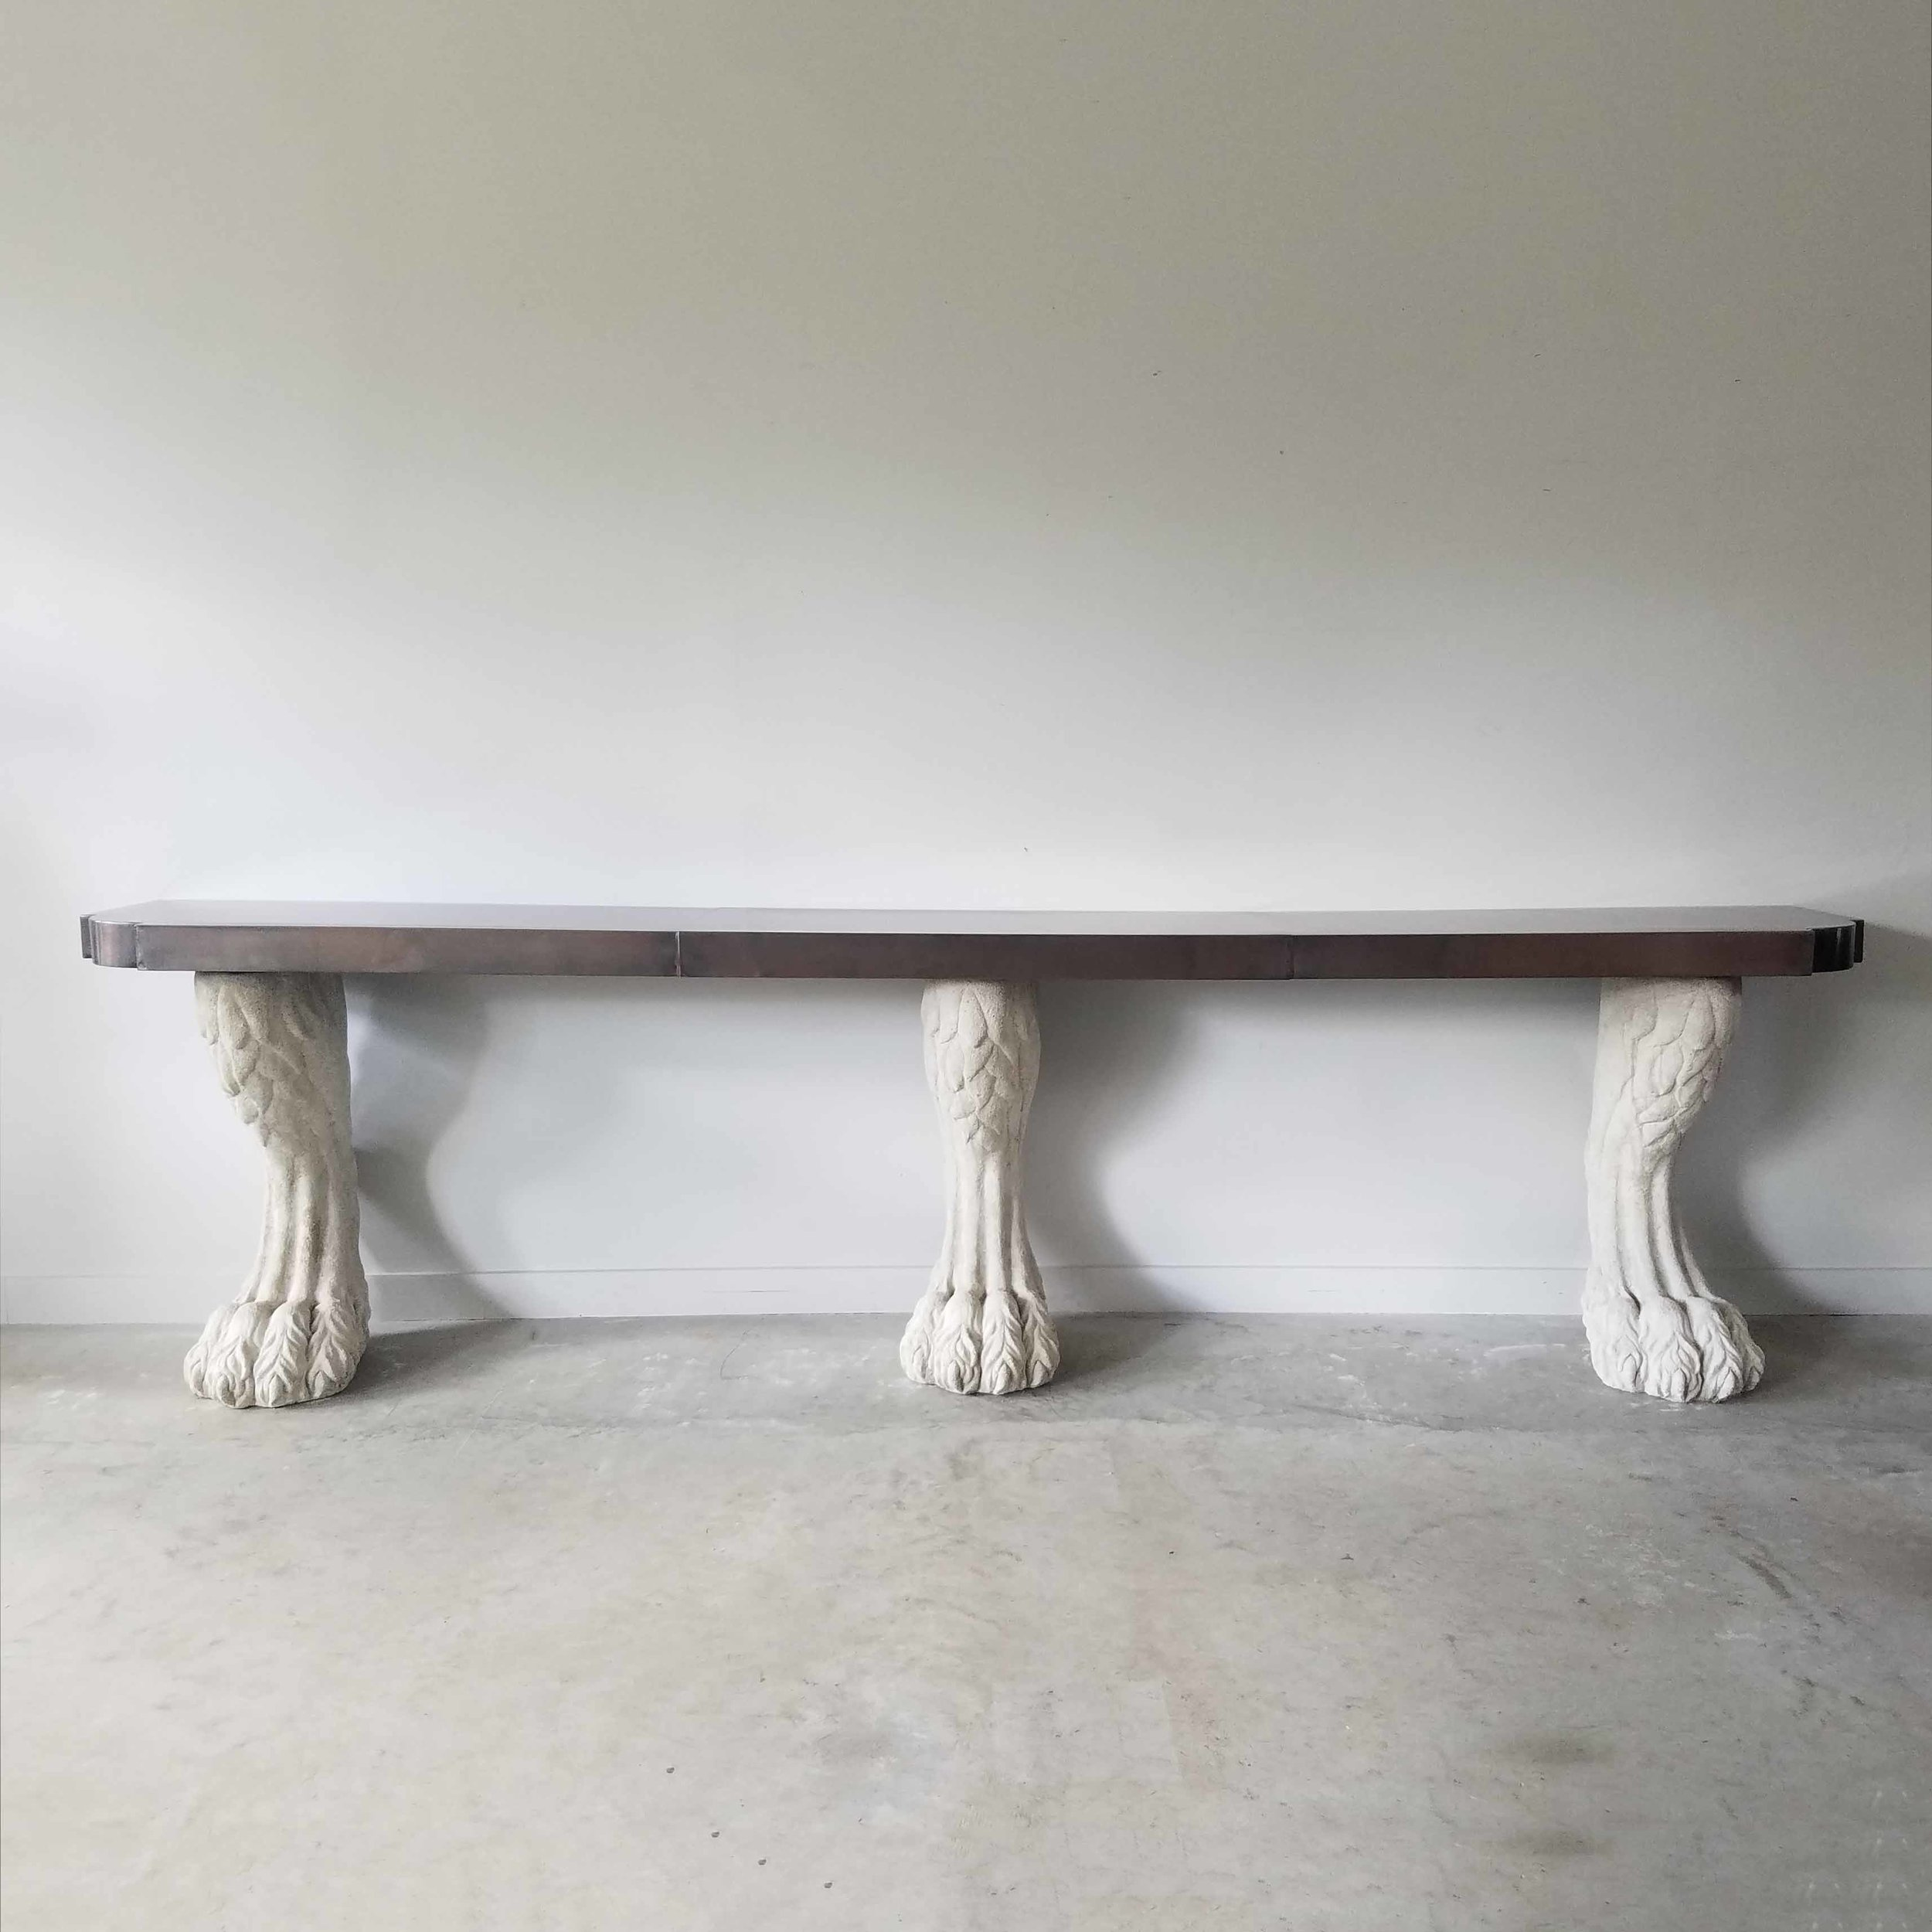 Triple Paw Foot Console Table with Darkened Copper Top and Curved Corner Details